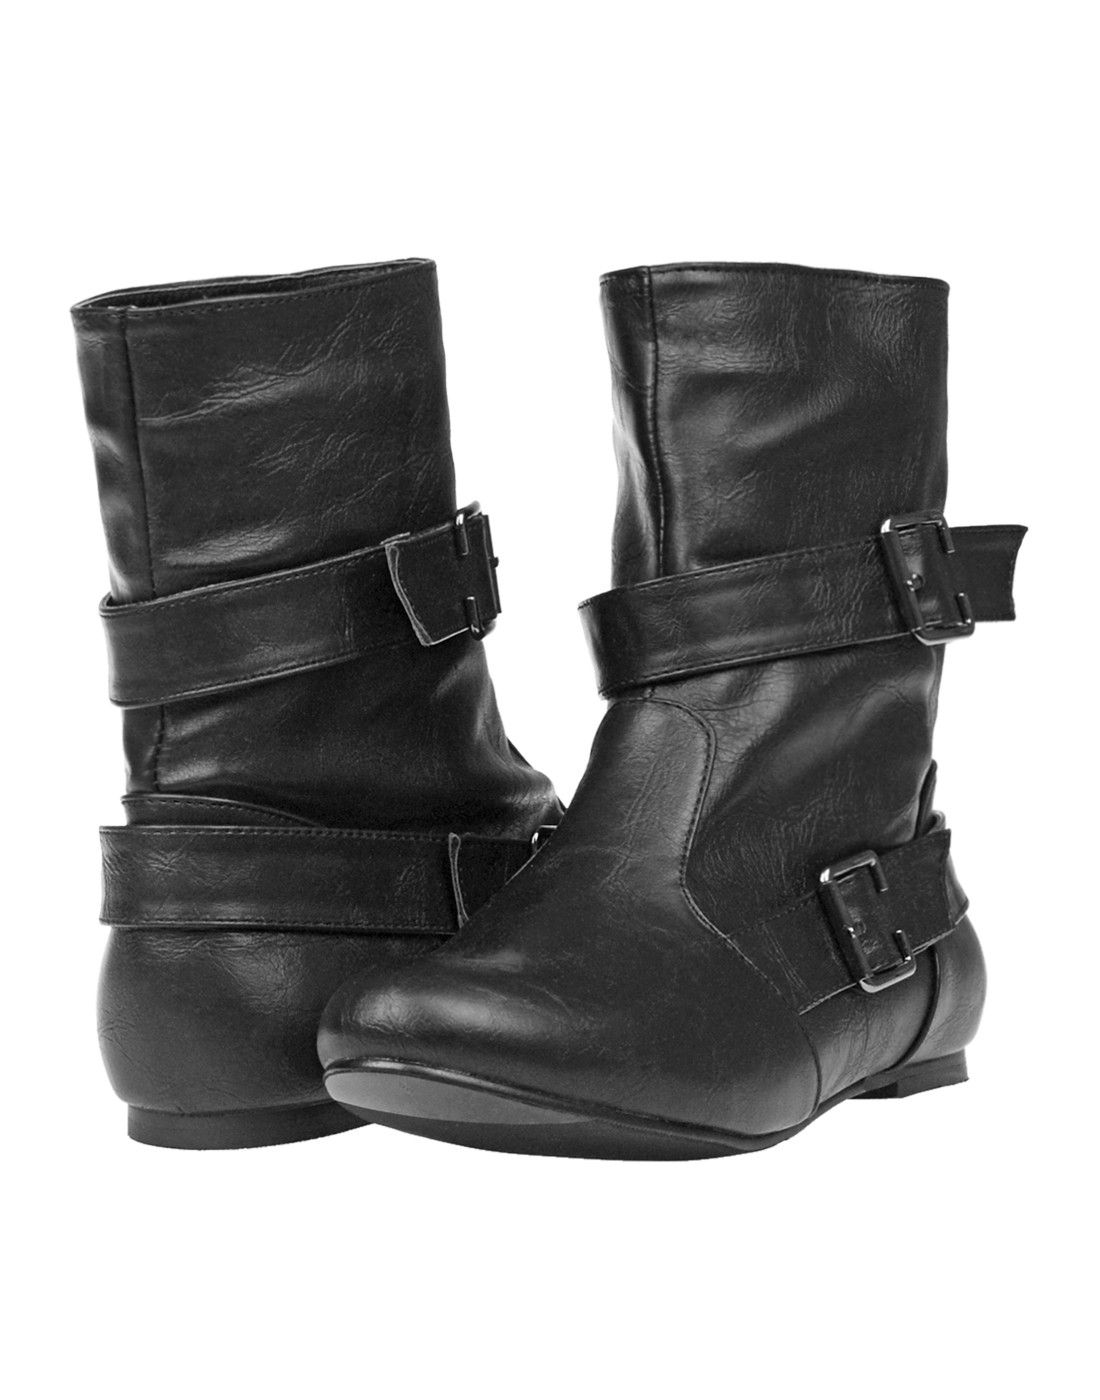 Black Motorcycle Boot My Style Pinterest Motorcycle Boots